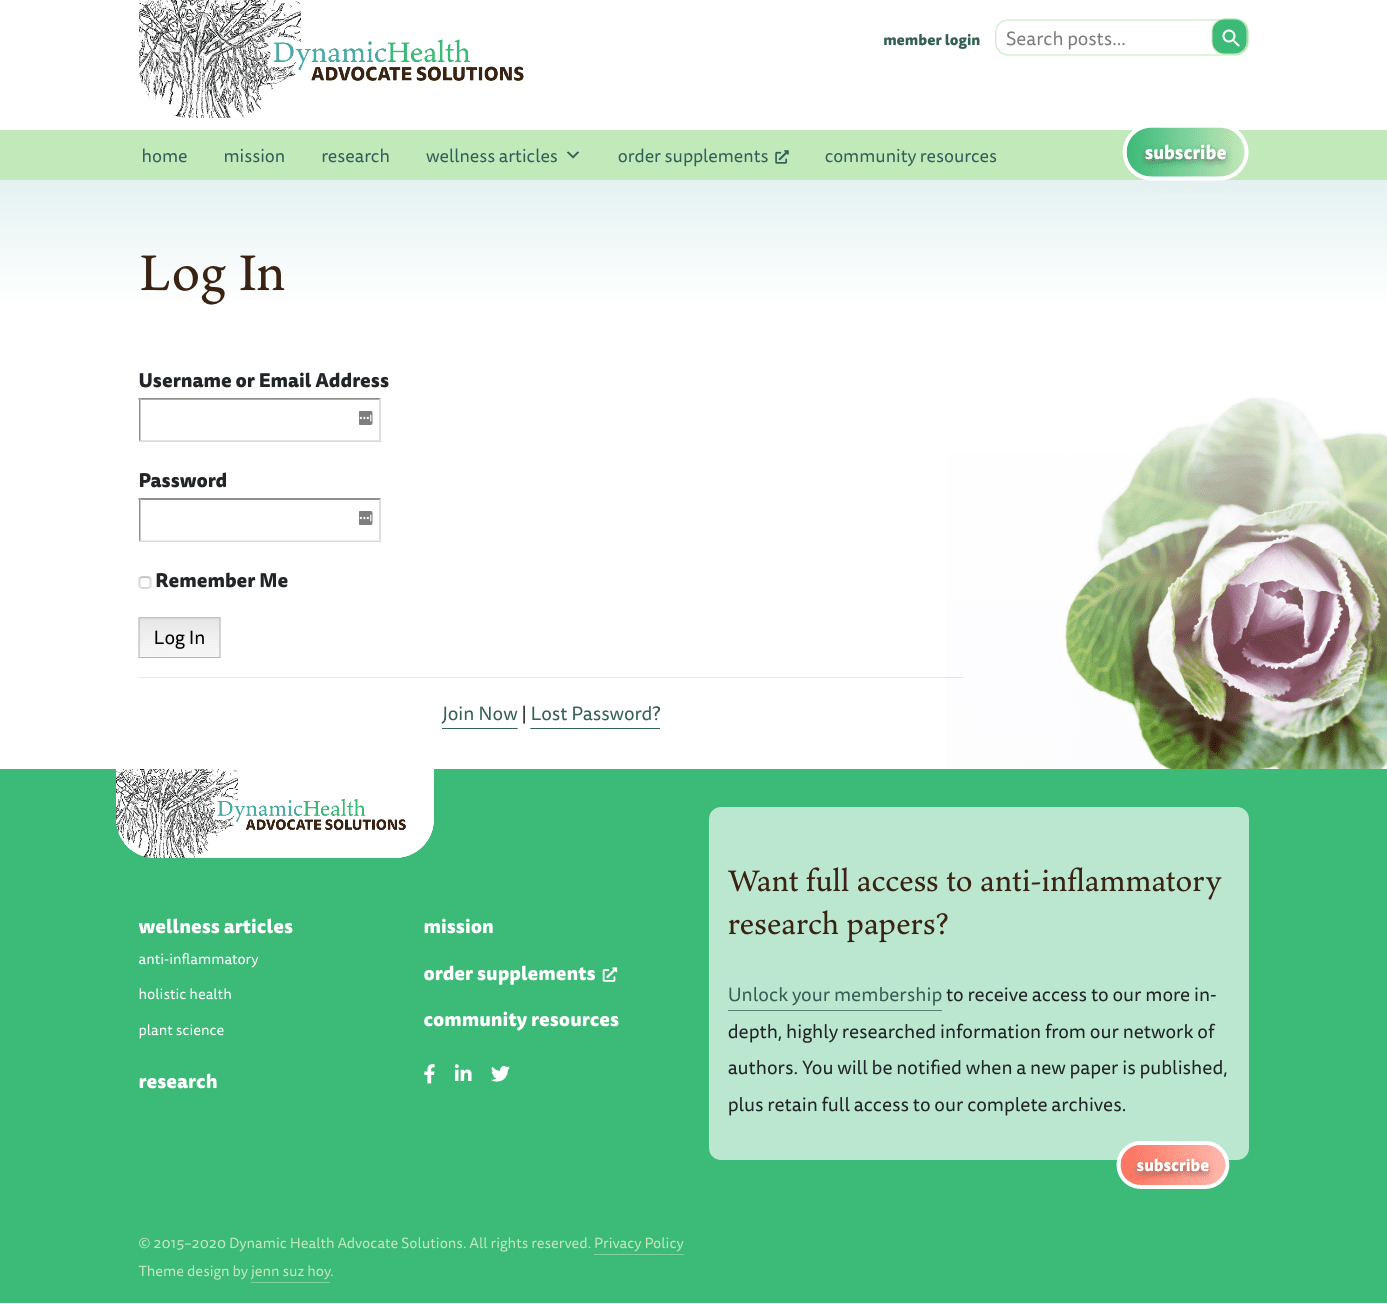 Screenshot of the Custom Login page for Dynamic Health Advocate Solutions